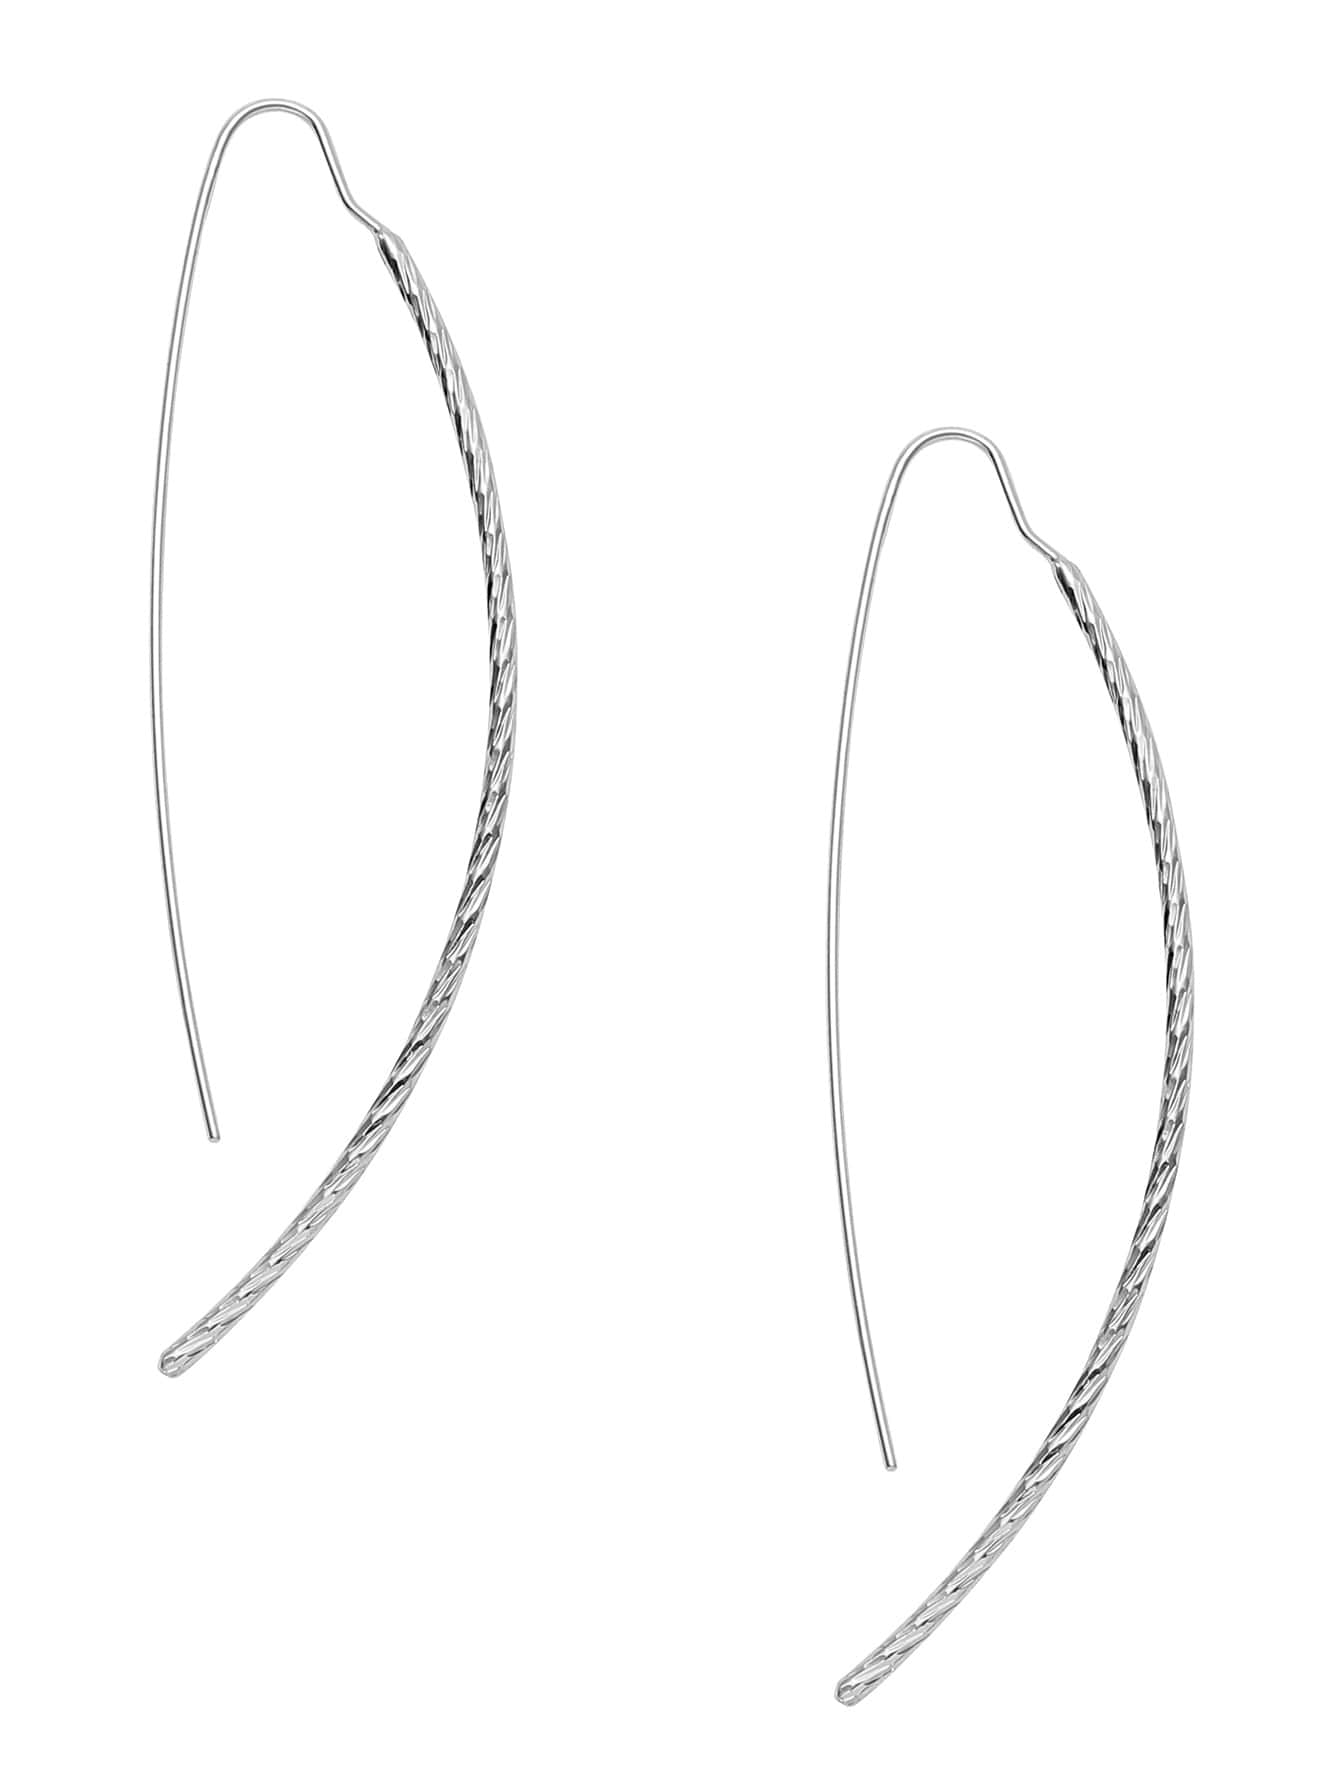 Silver Plated Smooth Design Drop EarringsSilver Plated Smooth Design Drop Earrings<br><br>color: Silver<br>size: None